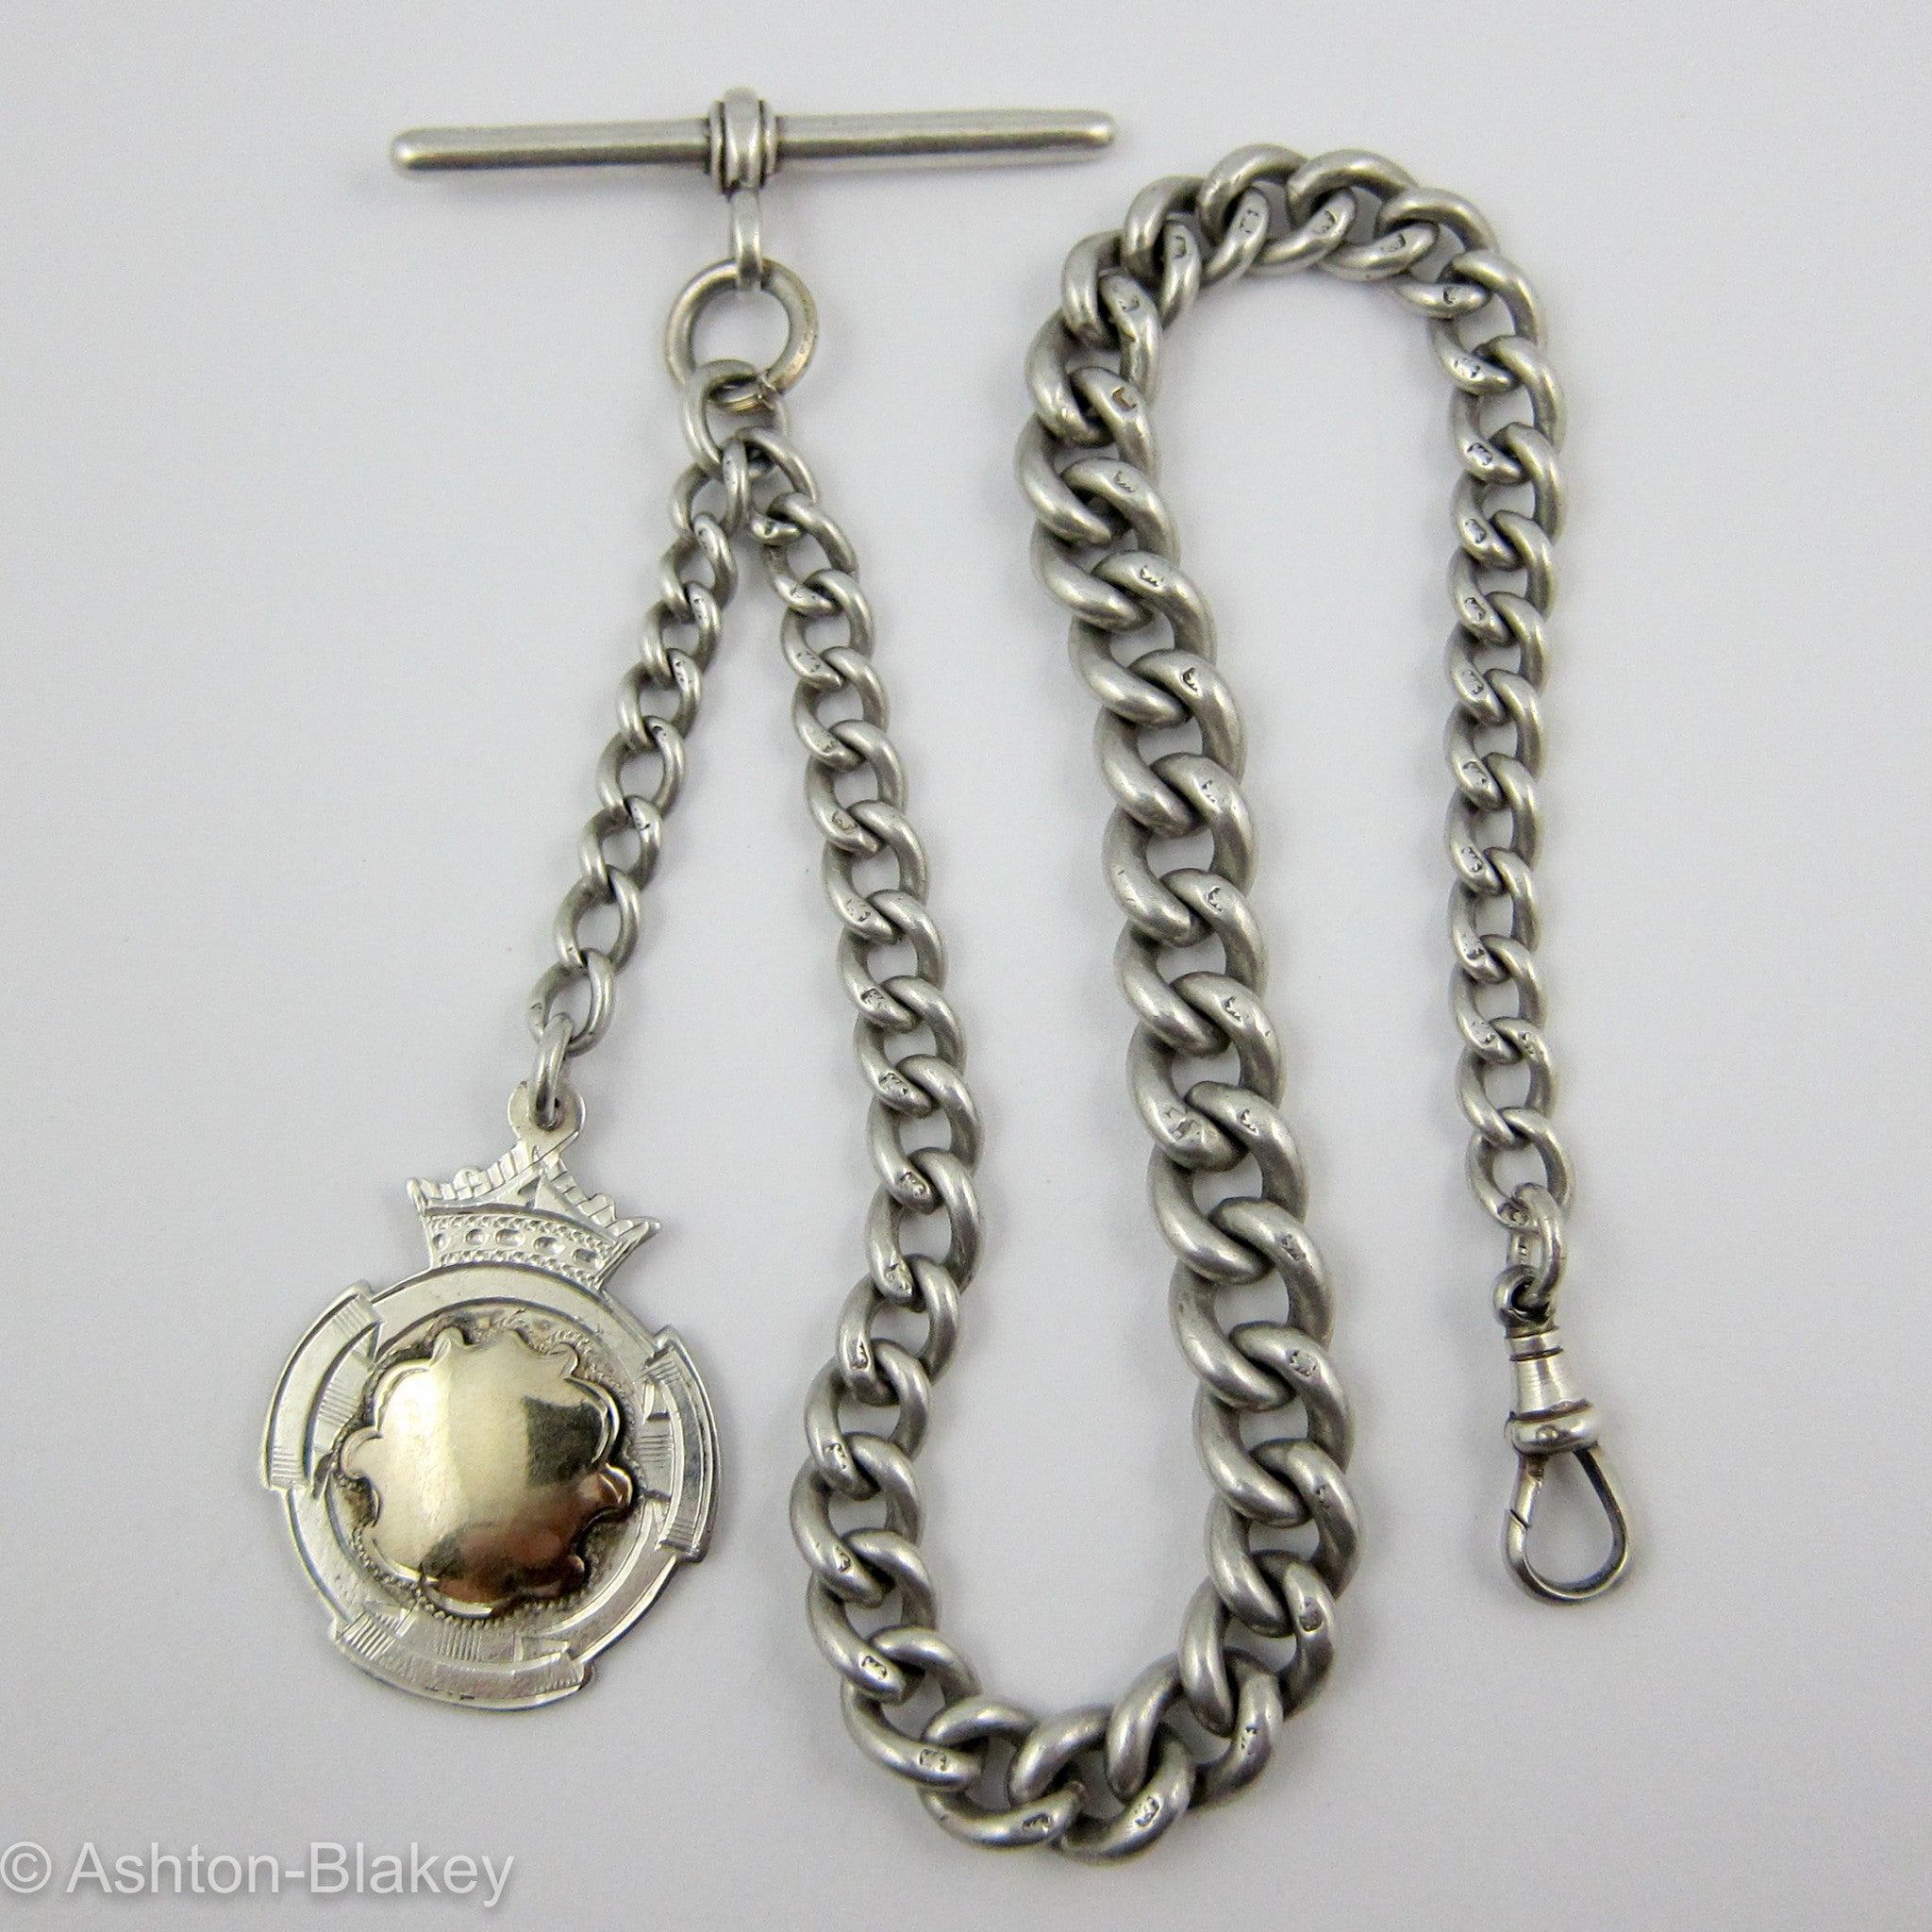 ... English Sterling Silver Antique Pocket Watch chain Jewelry -  Ashton-Blakey Vintage Watches ... 7e5ed2653340